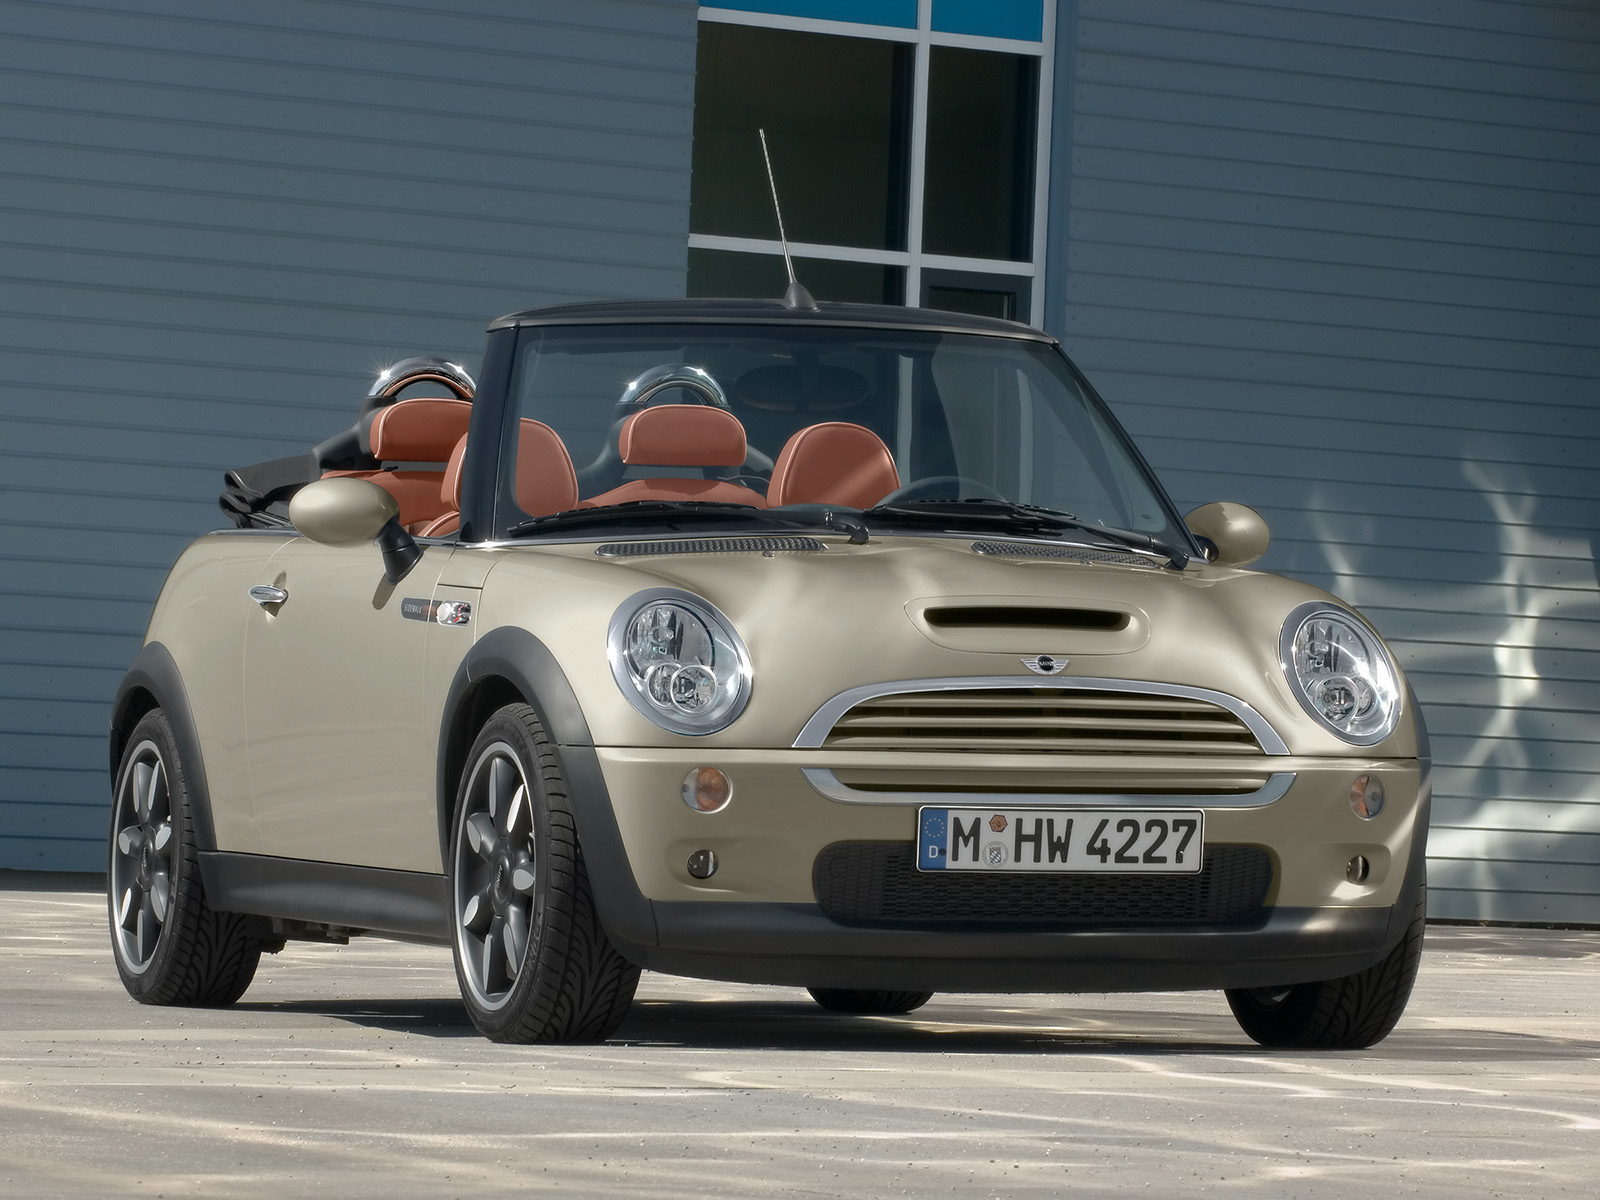 2007 mini cooper convertible sidewalk pictures history. Black Bedroom Furniture Sets. Home Design Ideas